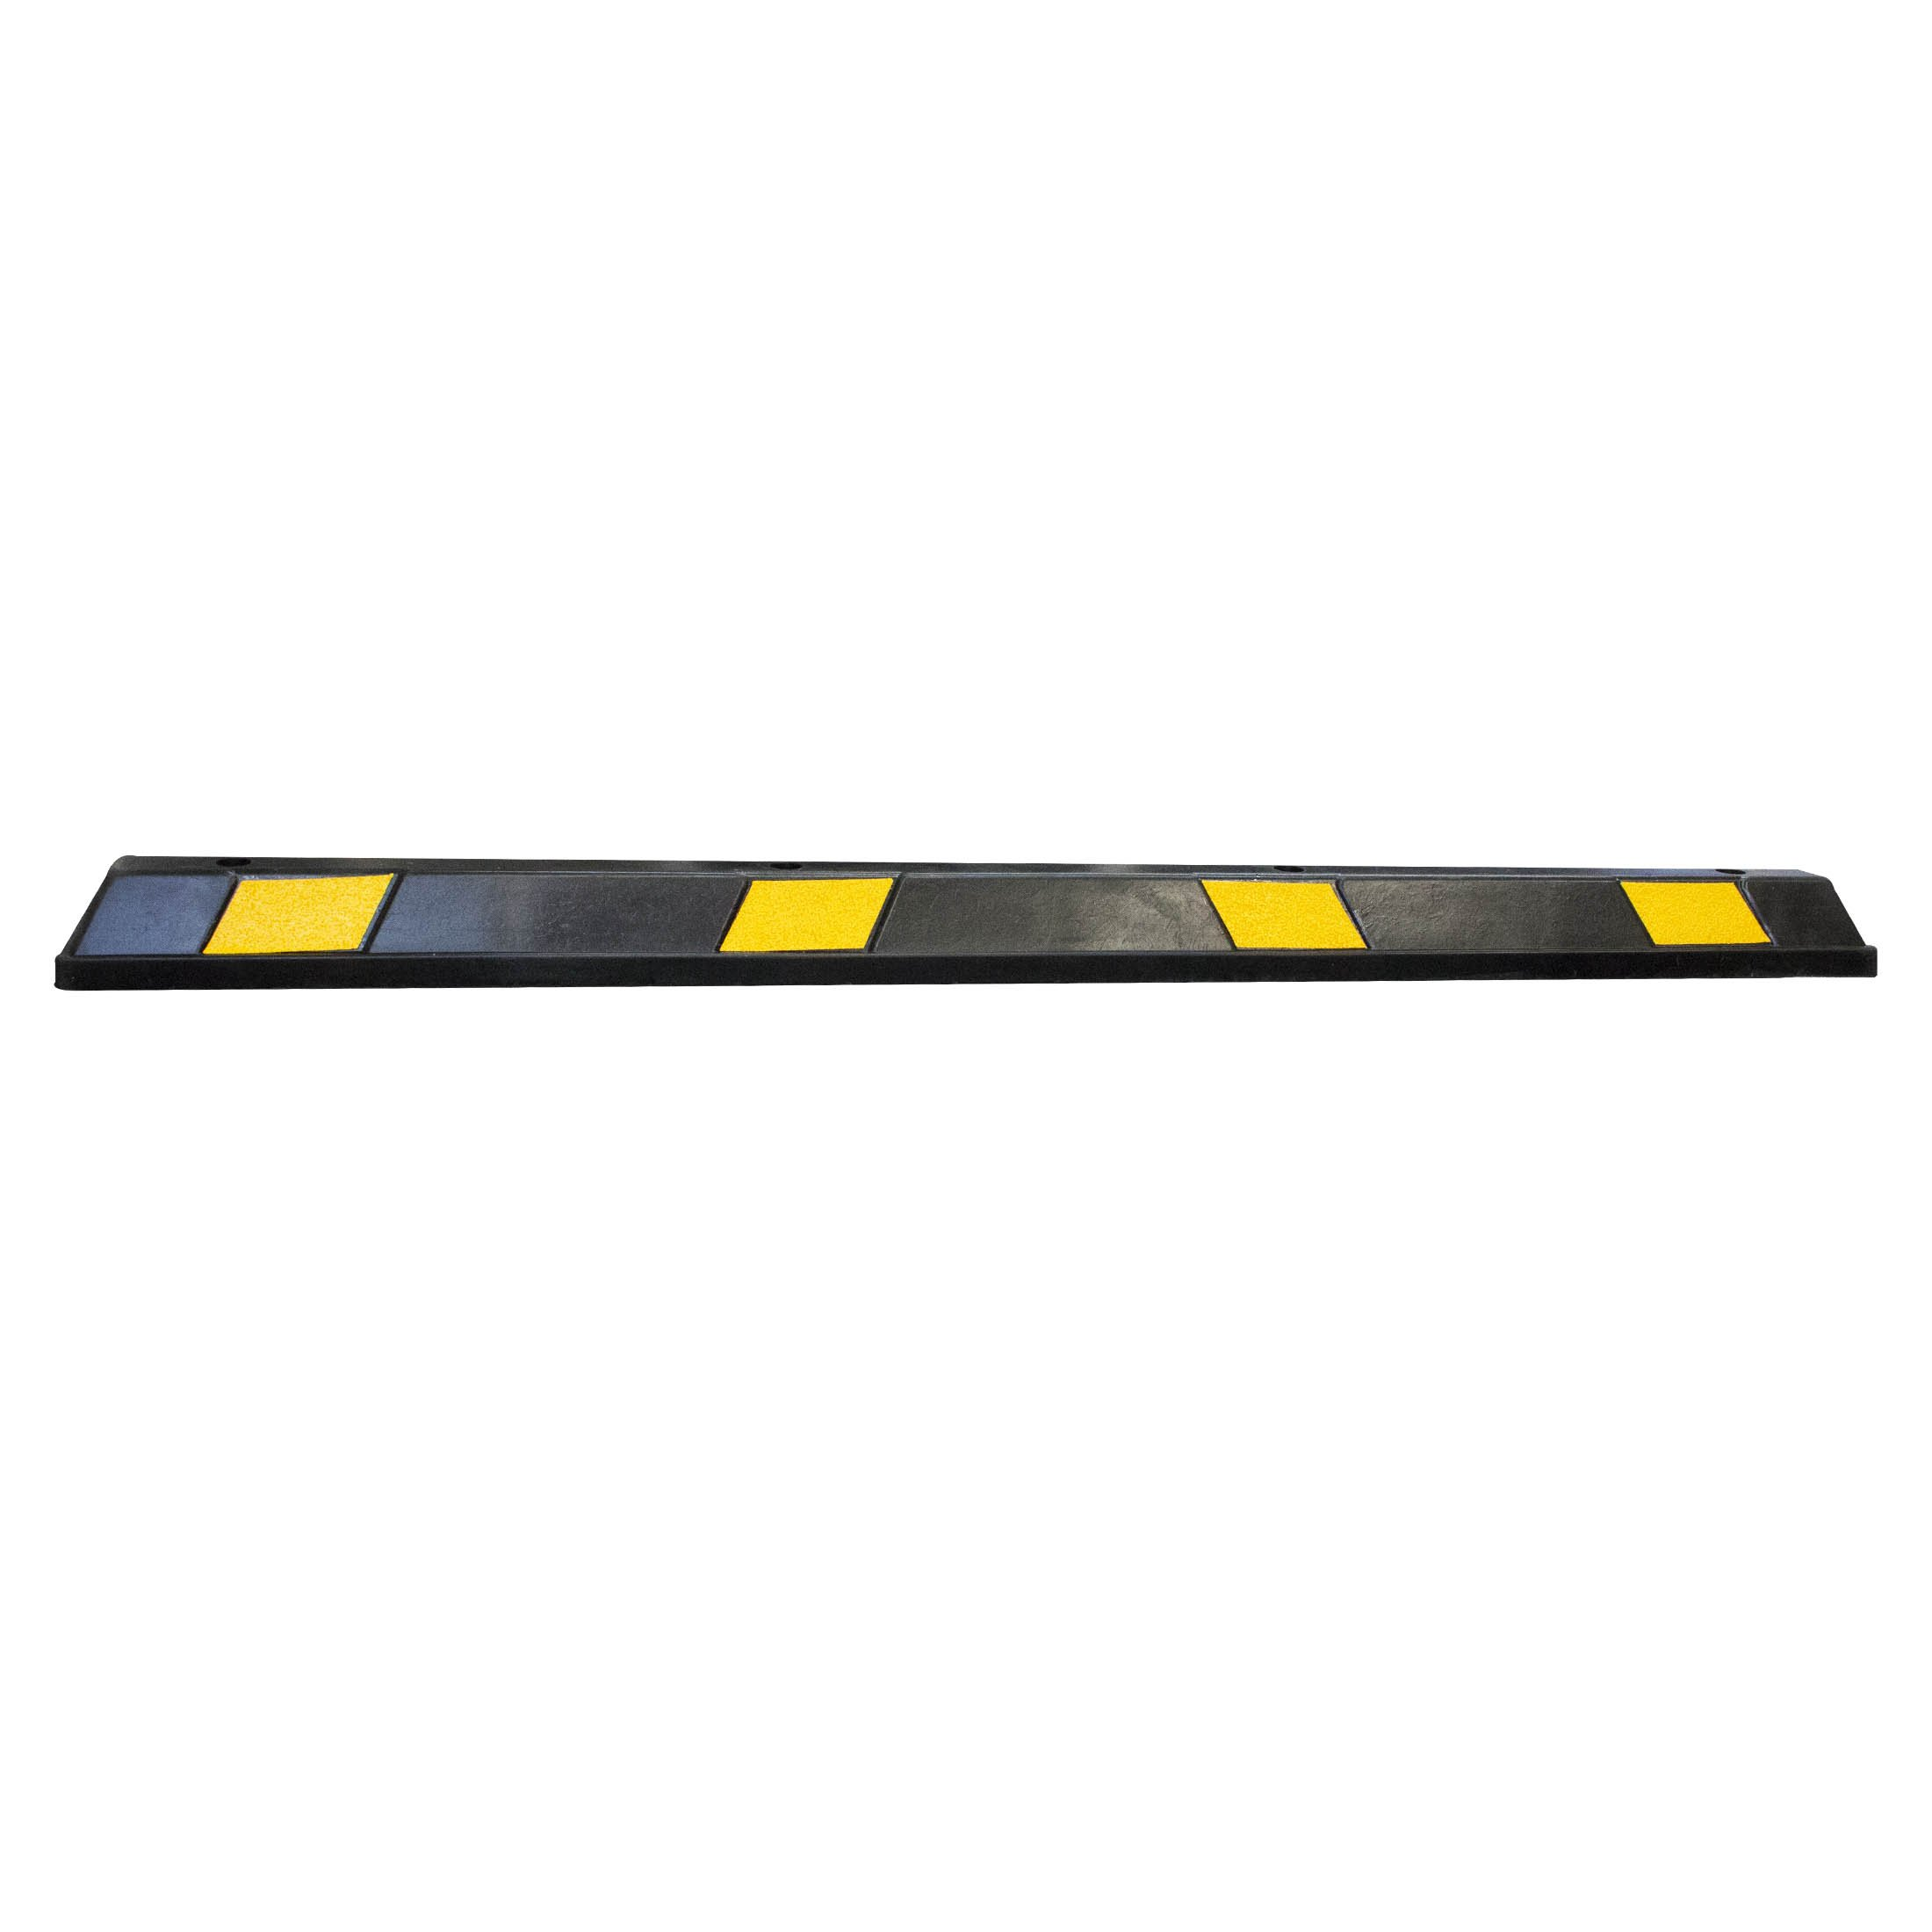 RK-BP72 Heavy Duty Rubber Parking Curb, Parking Block, 72 -Inch for Car, Truck, RV and Trailer Stop Aid by RK (Image #2)